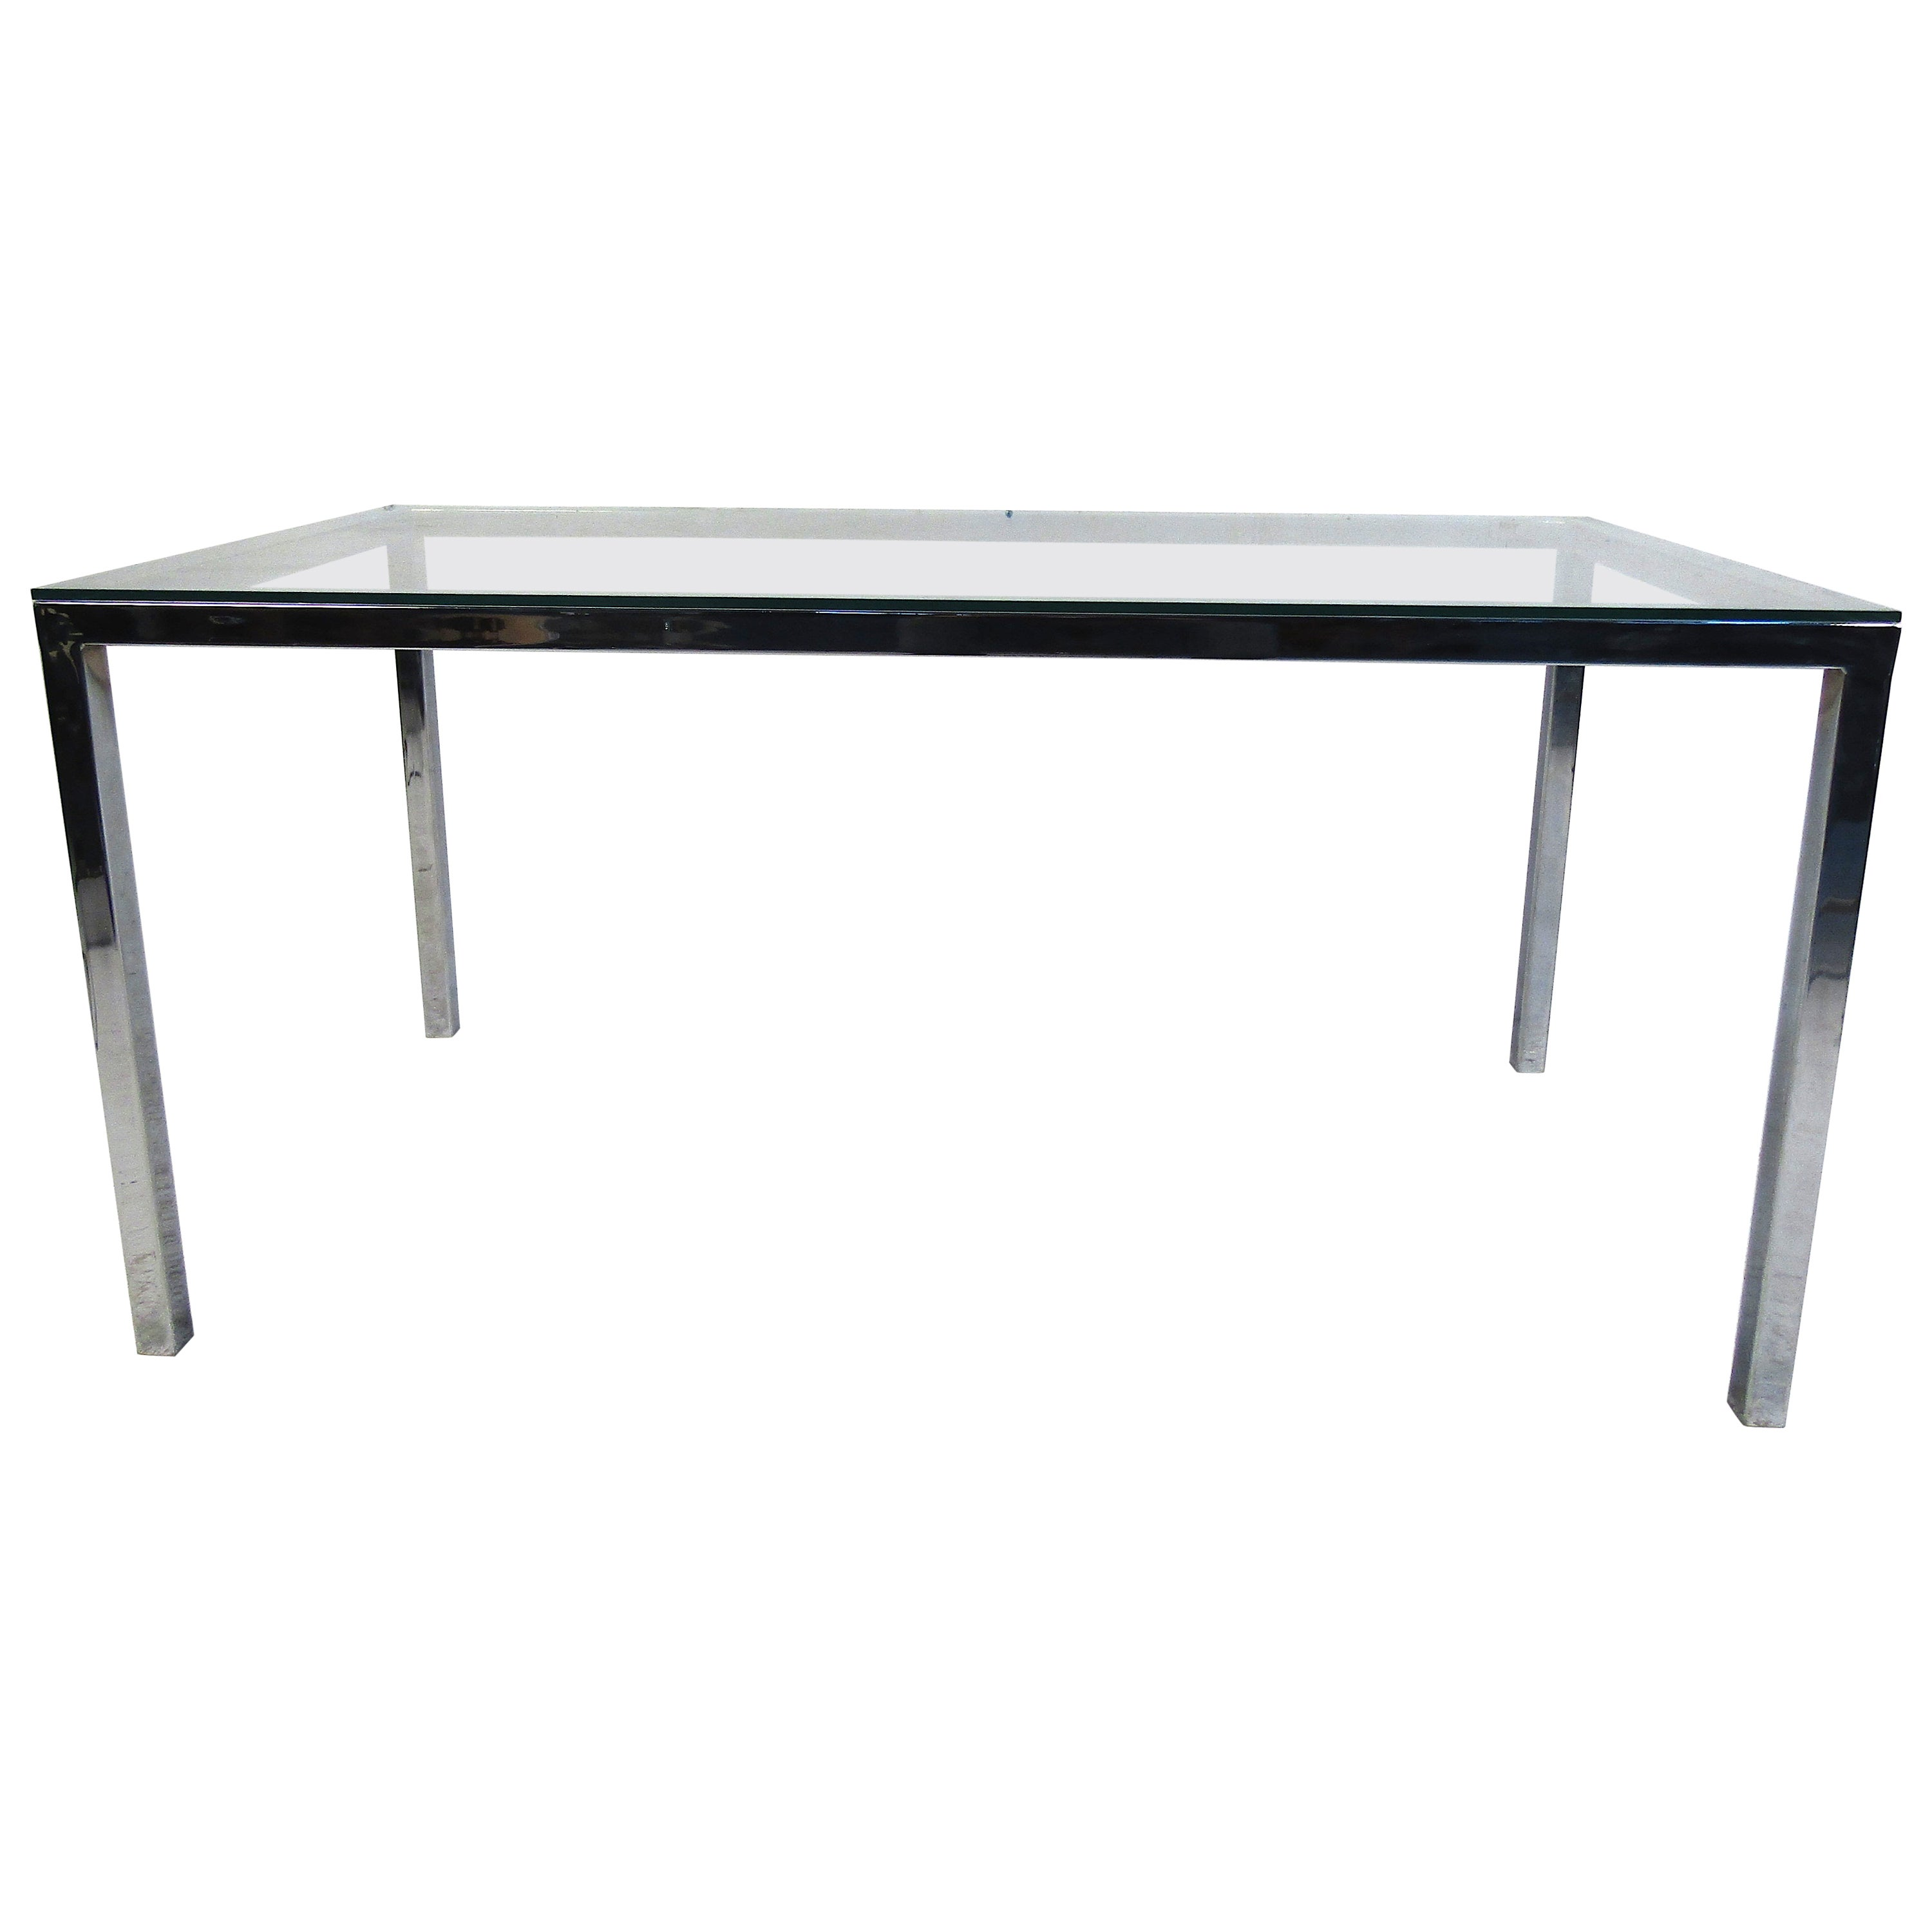 Midcentury Glass and Chrome Dining Table